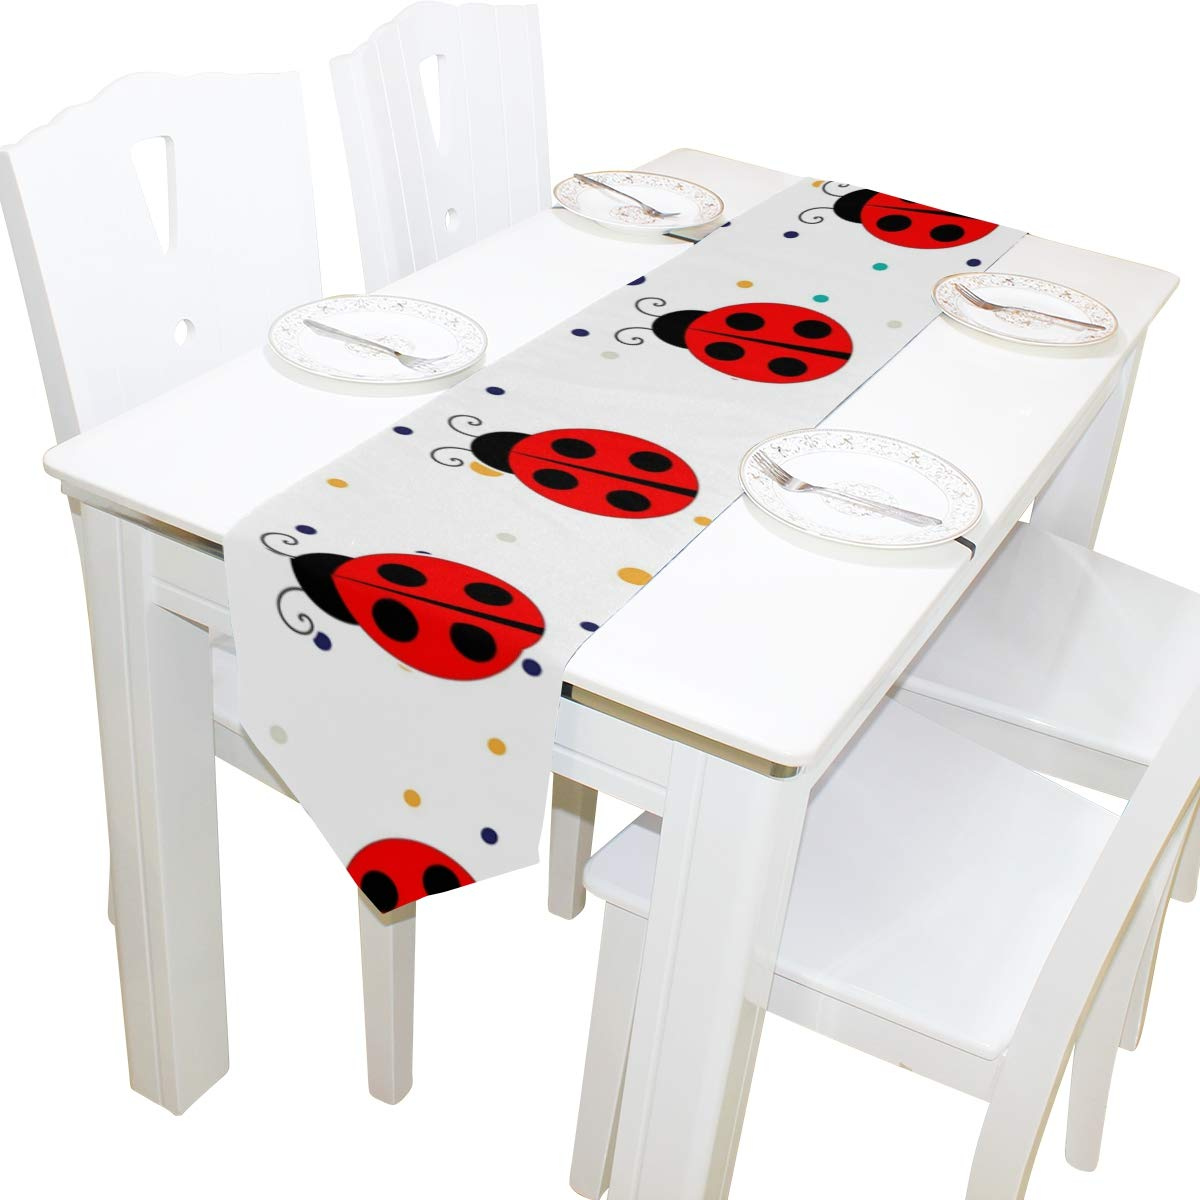 Amazon.com: Caminos de mesa HHatt rojo Ladybug decoración ...